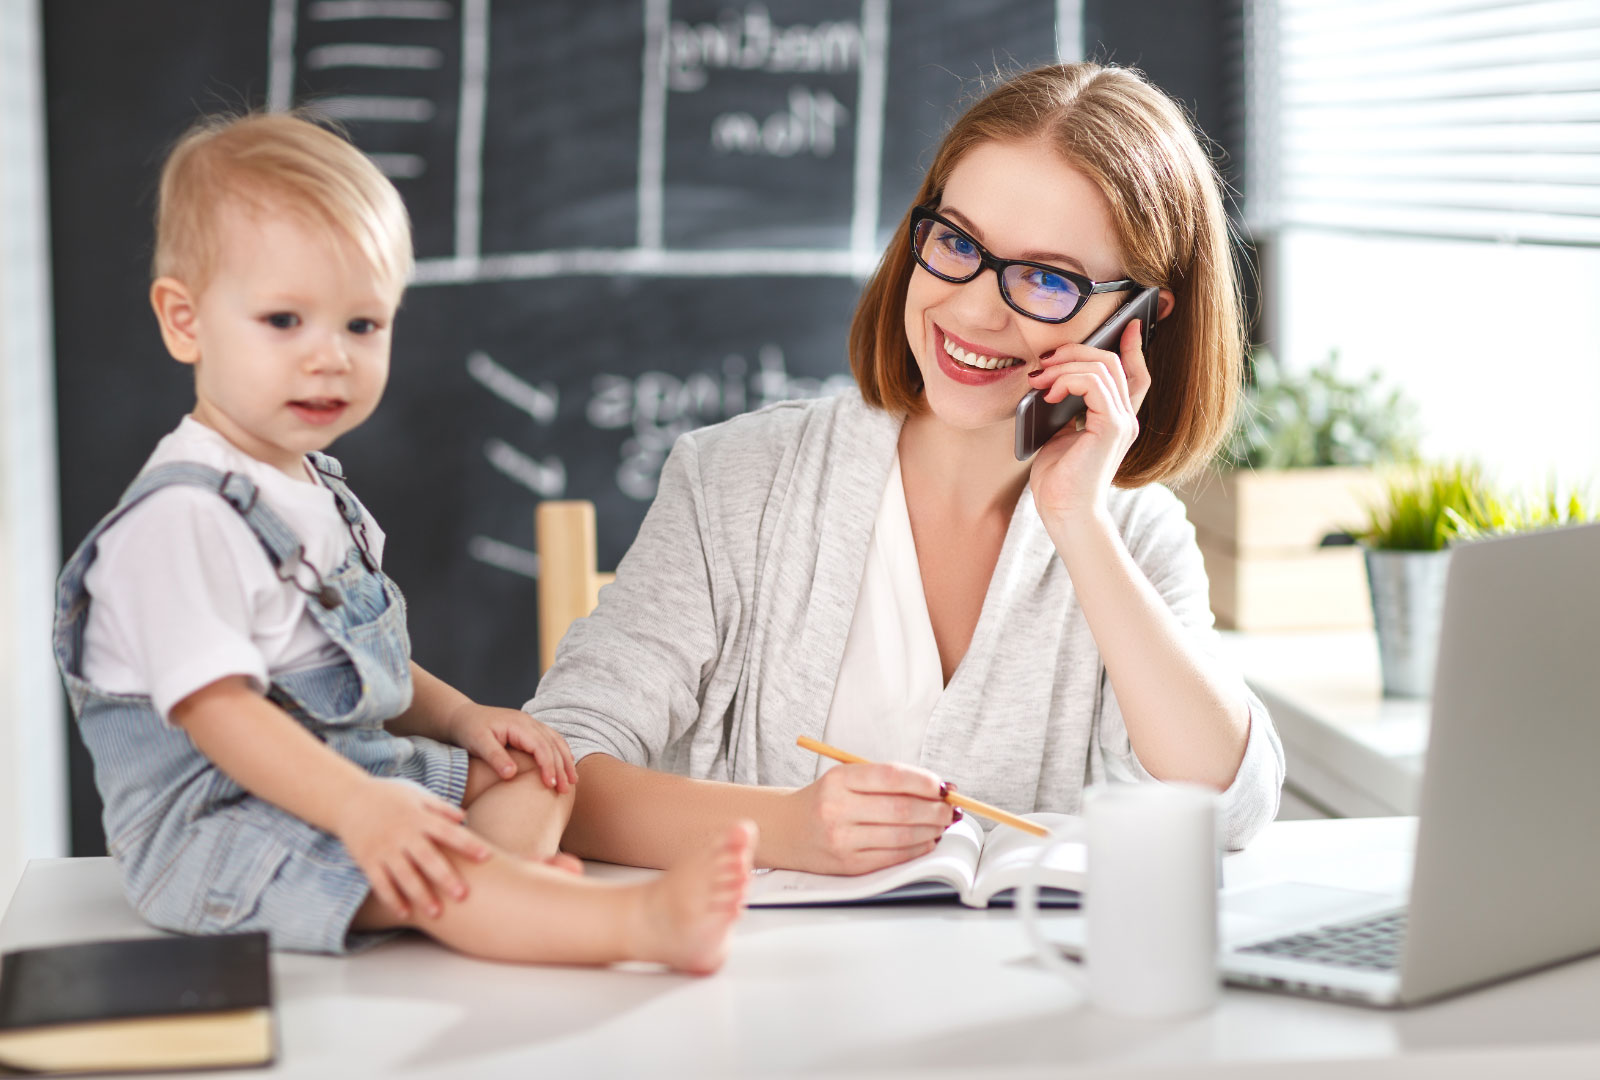 Smiling professional mother is multitasking at home with her laptop open as talks on her phone and supervises her toddler who is content and sat on the desk in front of her